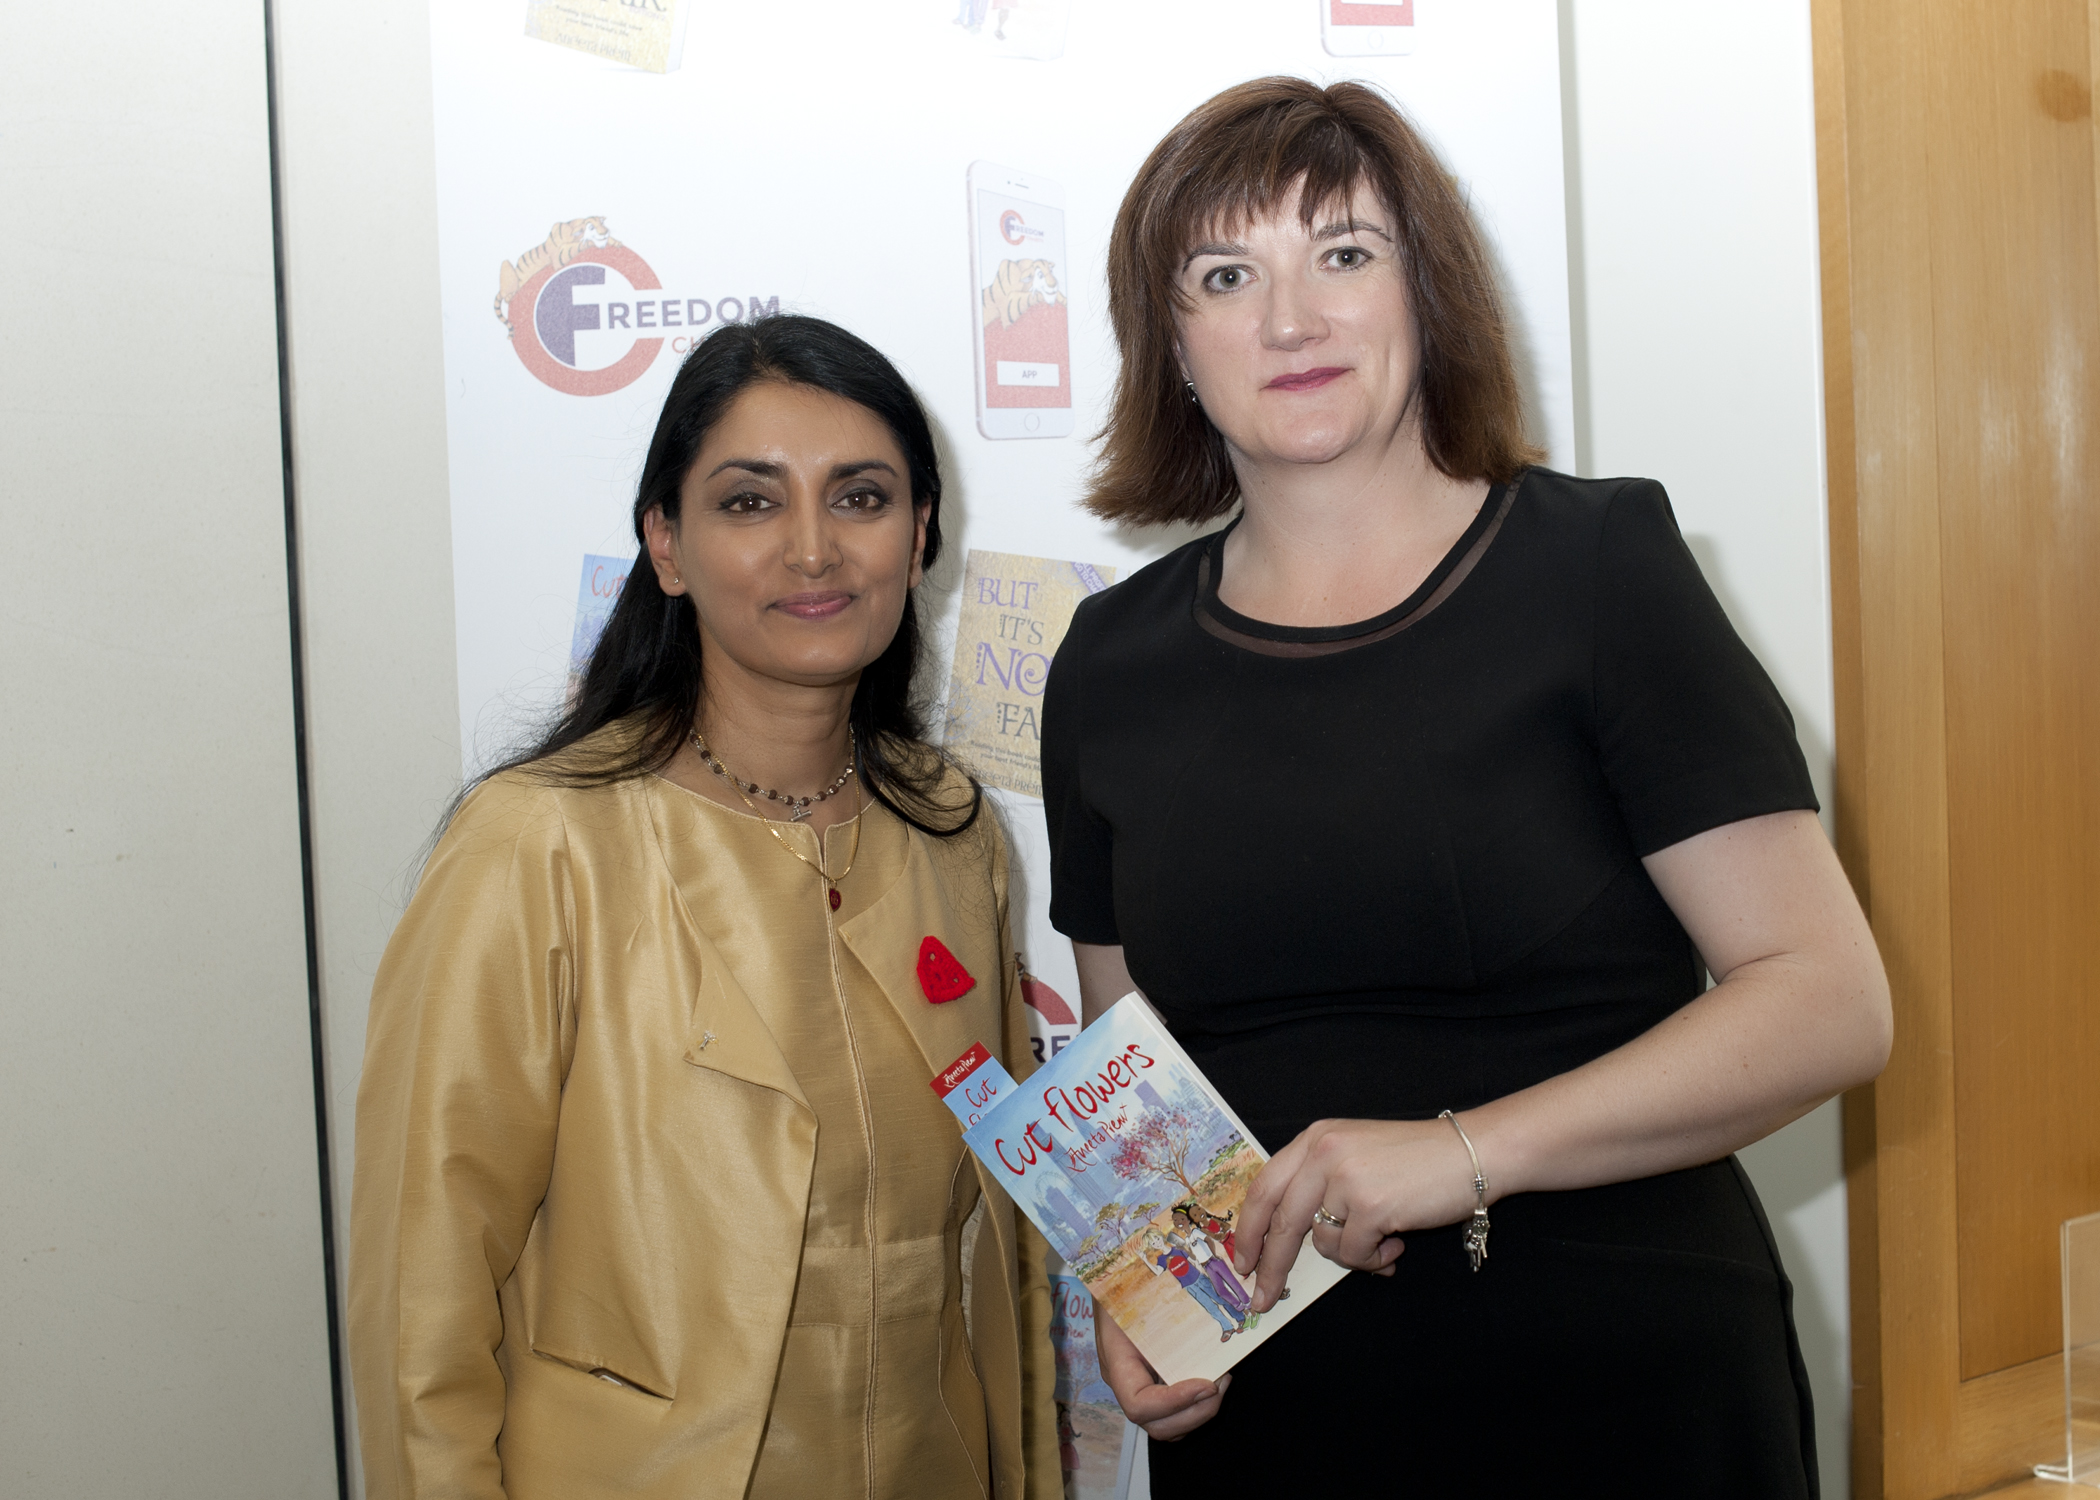 Aneeta Prem , Nicky Morgan MP, Cut Flowers Book, House of Commons